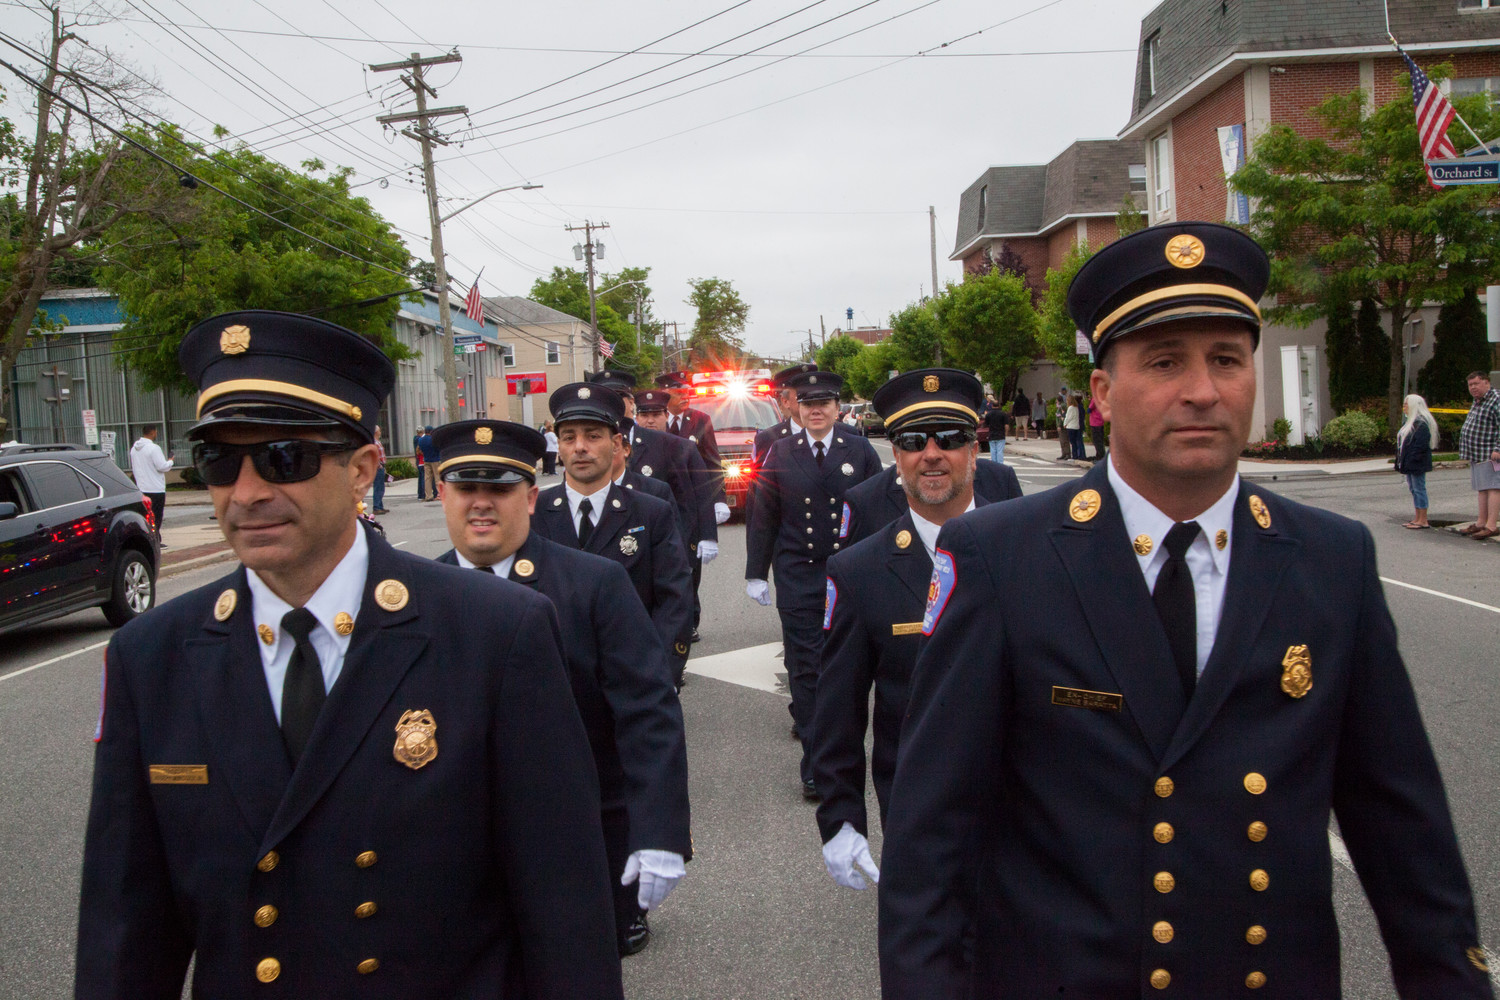 Members of the Oyster Bay Fire Department came out in full force to march in the parade.